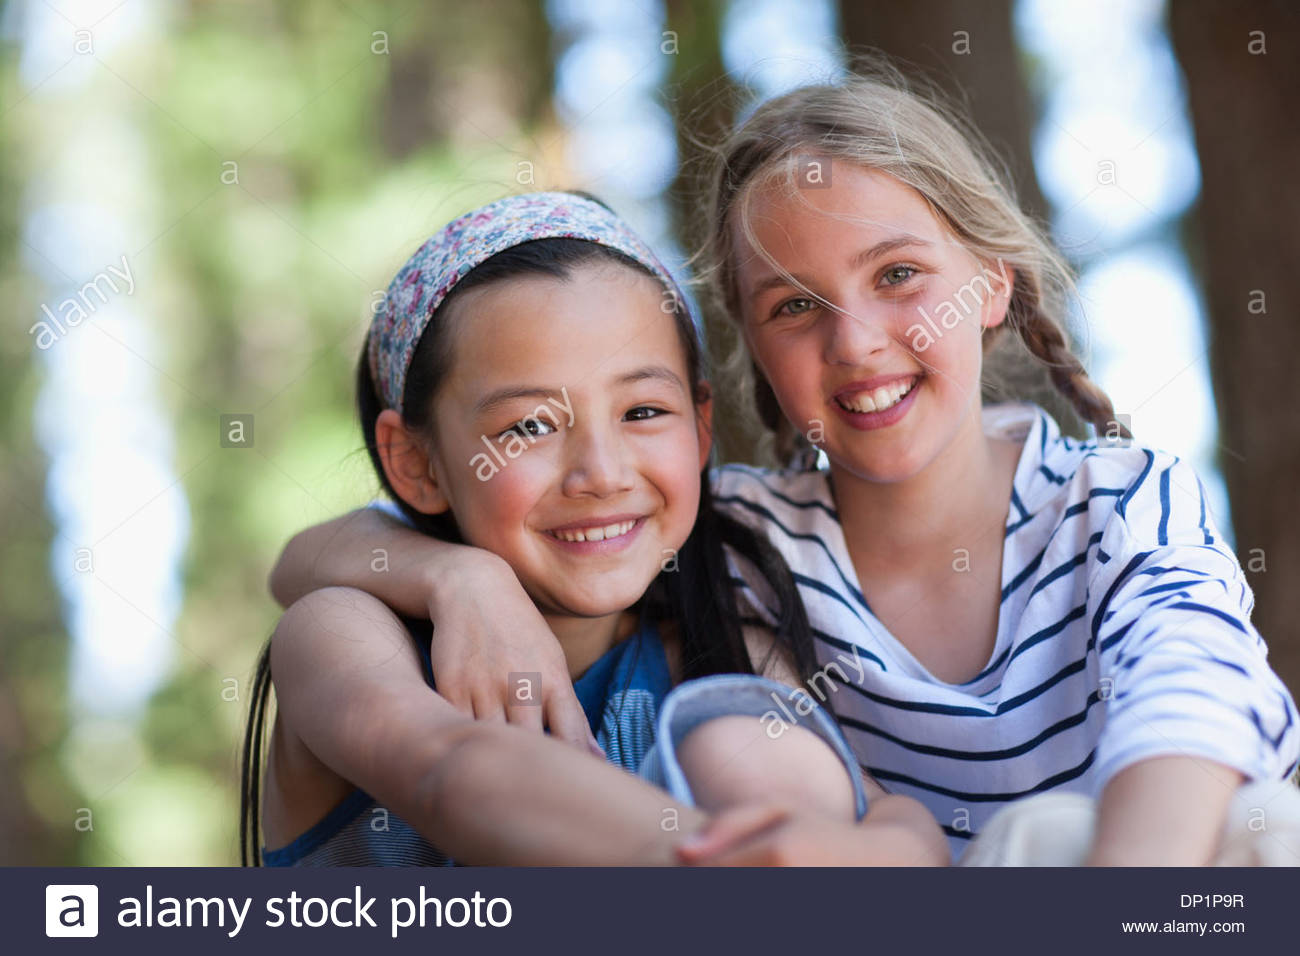 Two girls, portrait Stock Photo